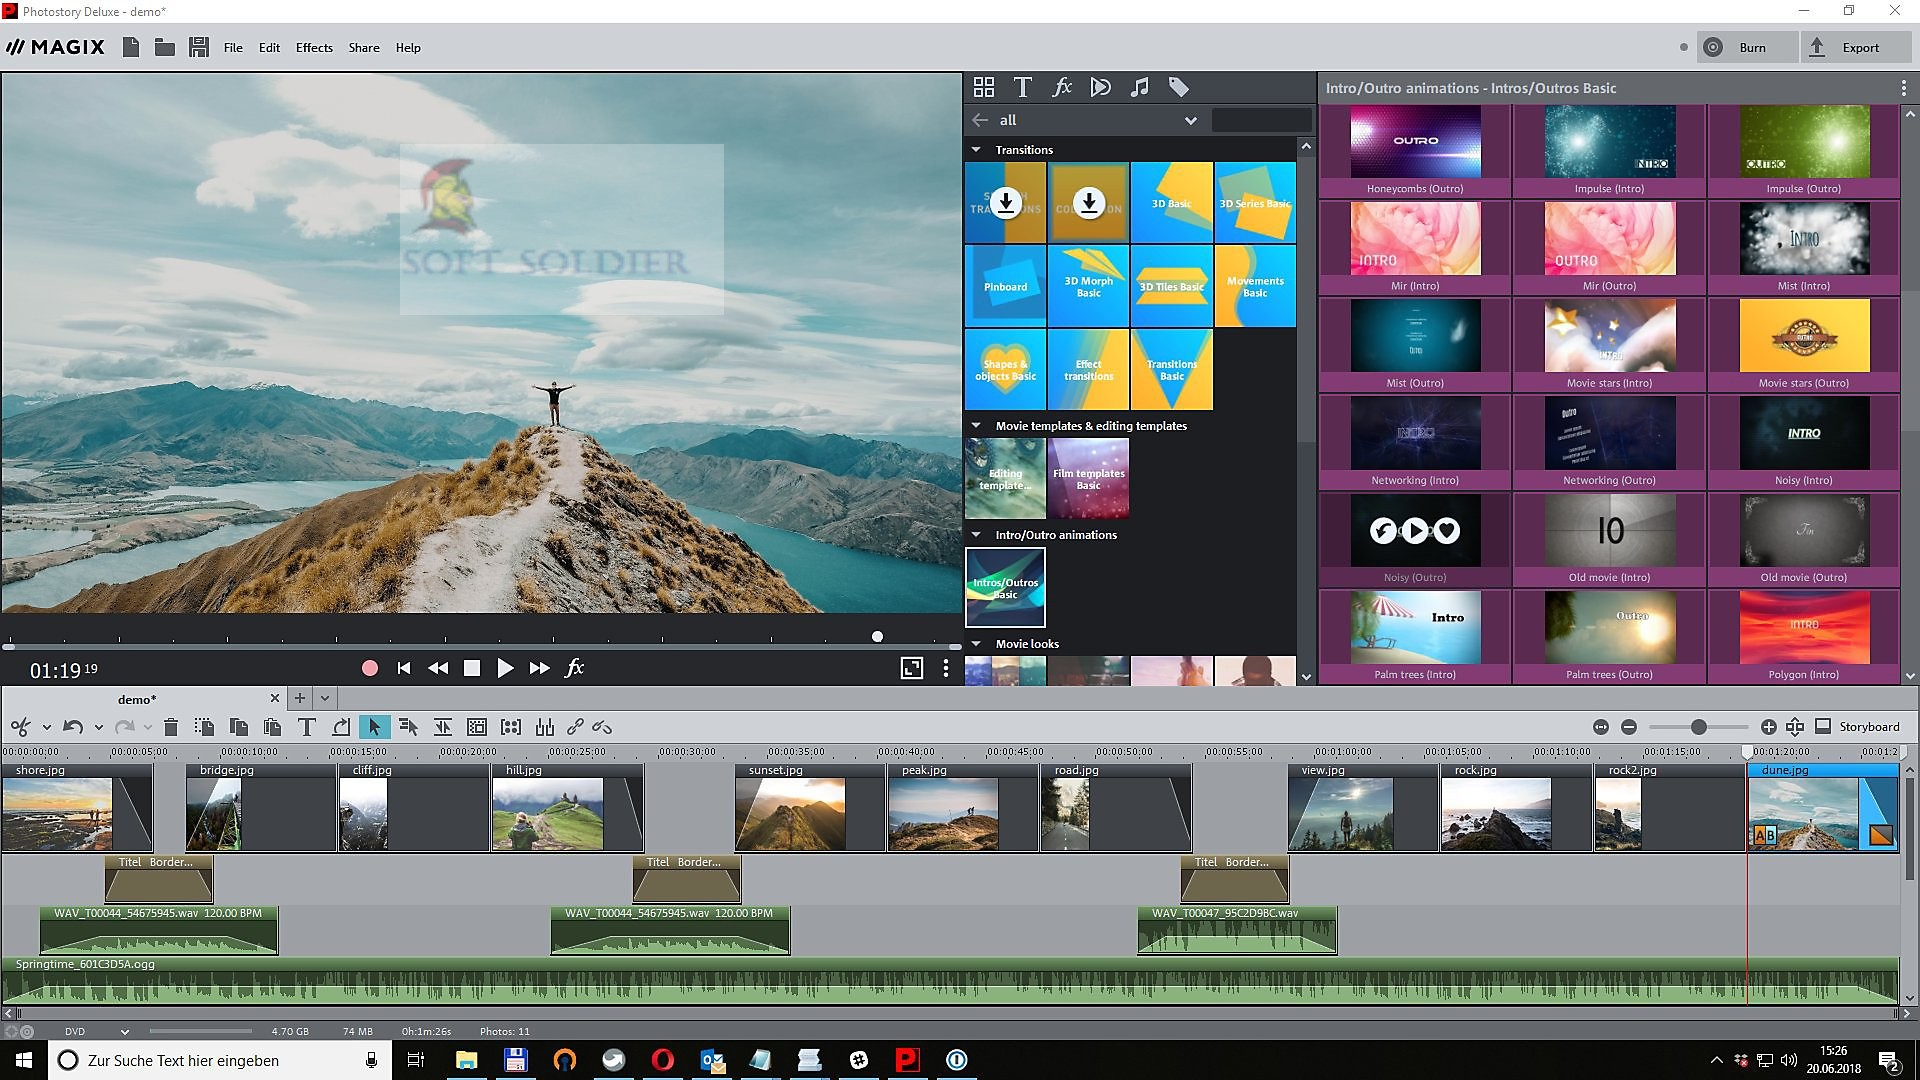 MAGIX Photostory Deluxe 2020 Free Download - Soft Soldier